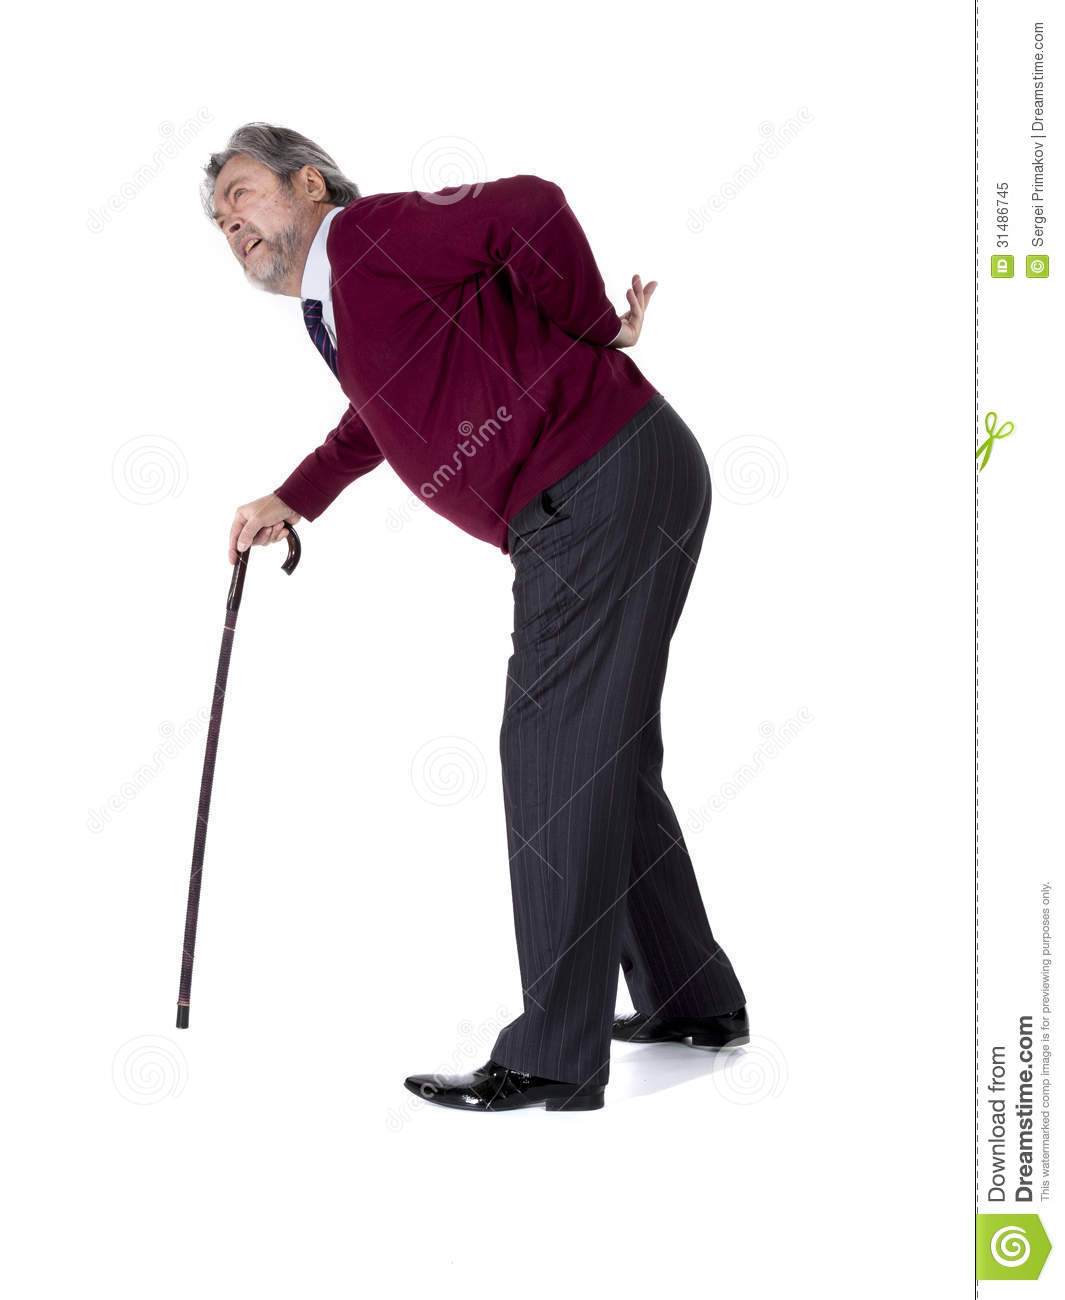 Old Man With A Cane Royalty Free Stock Photo - Image: 31486745